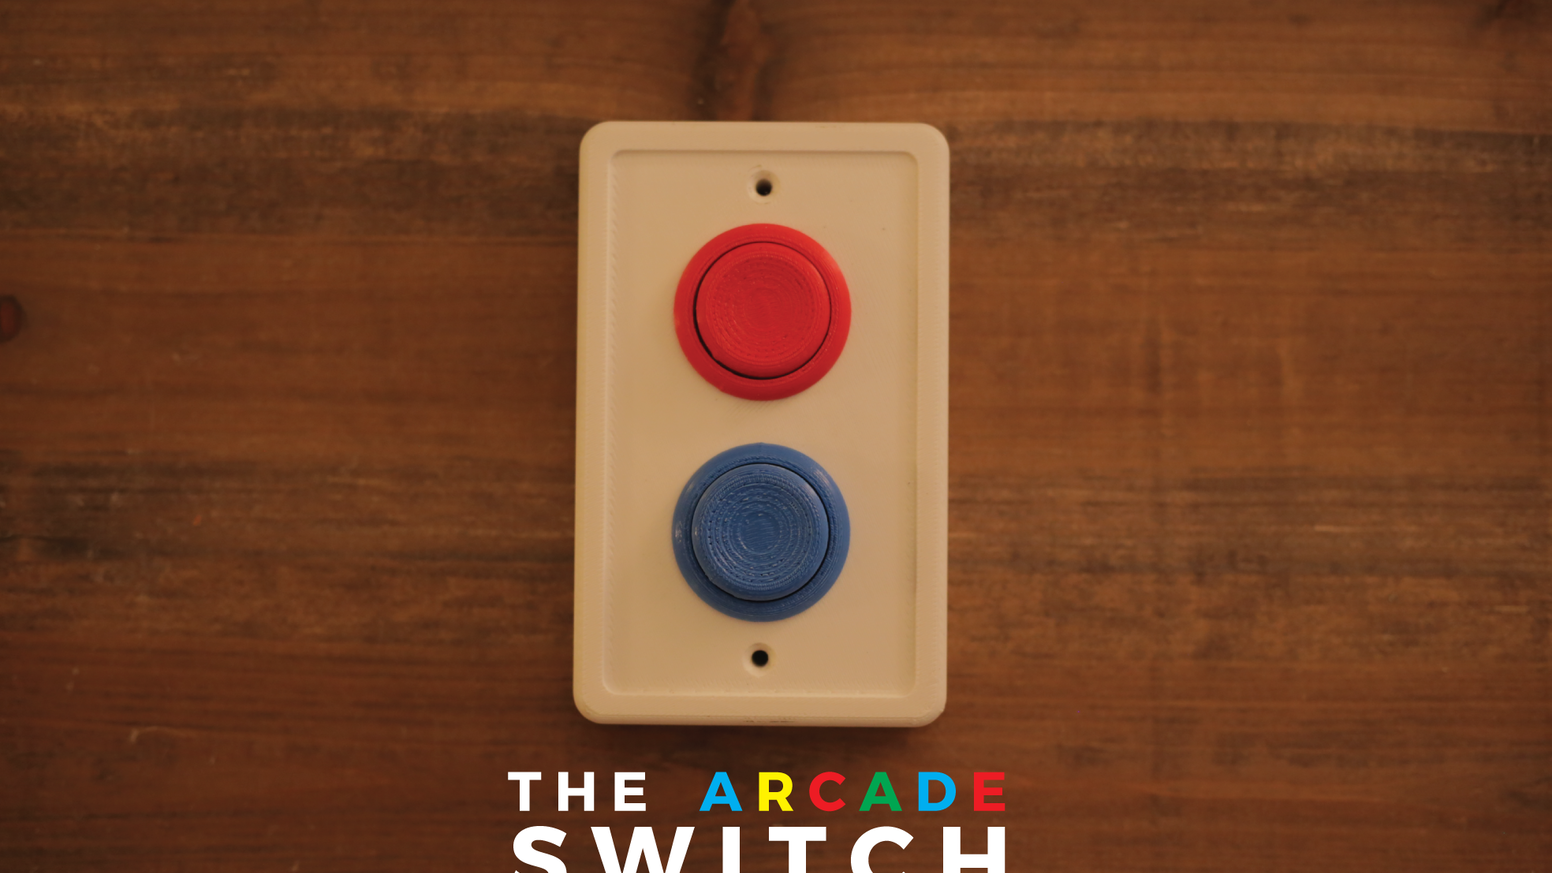 Arcade Era light-switch covers to make you feel like a kid again. Installs in 30 Seconds. Only $4!